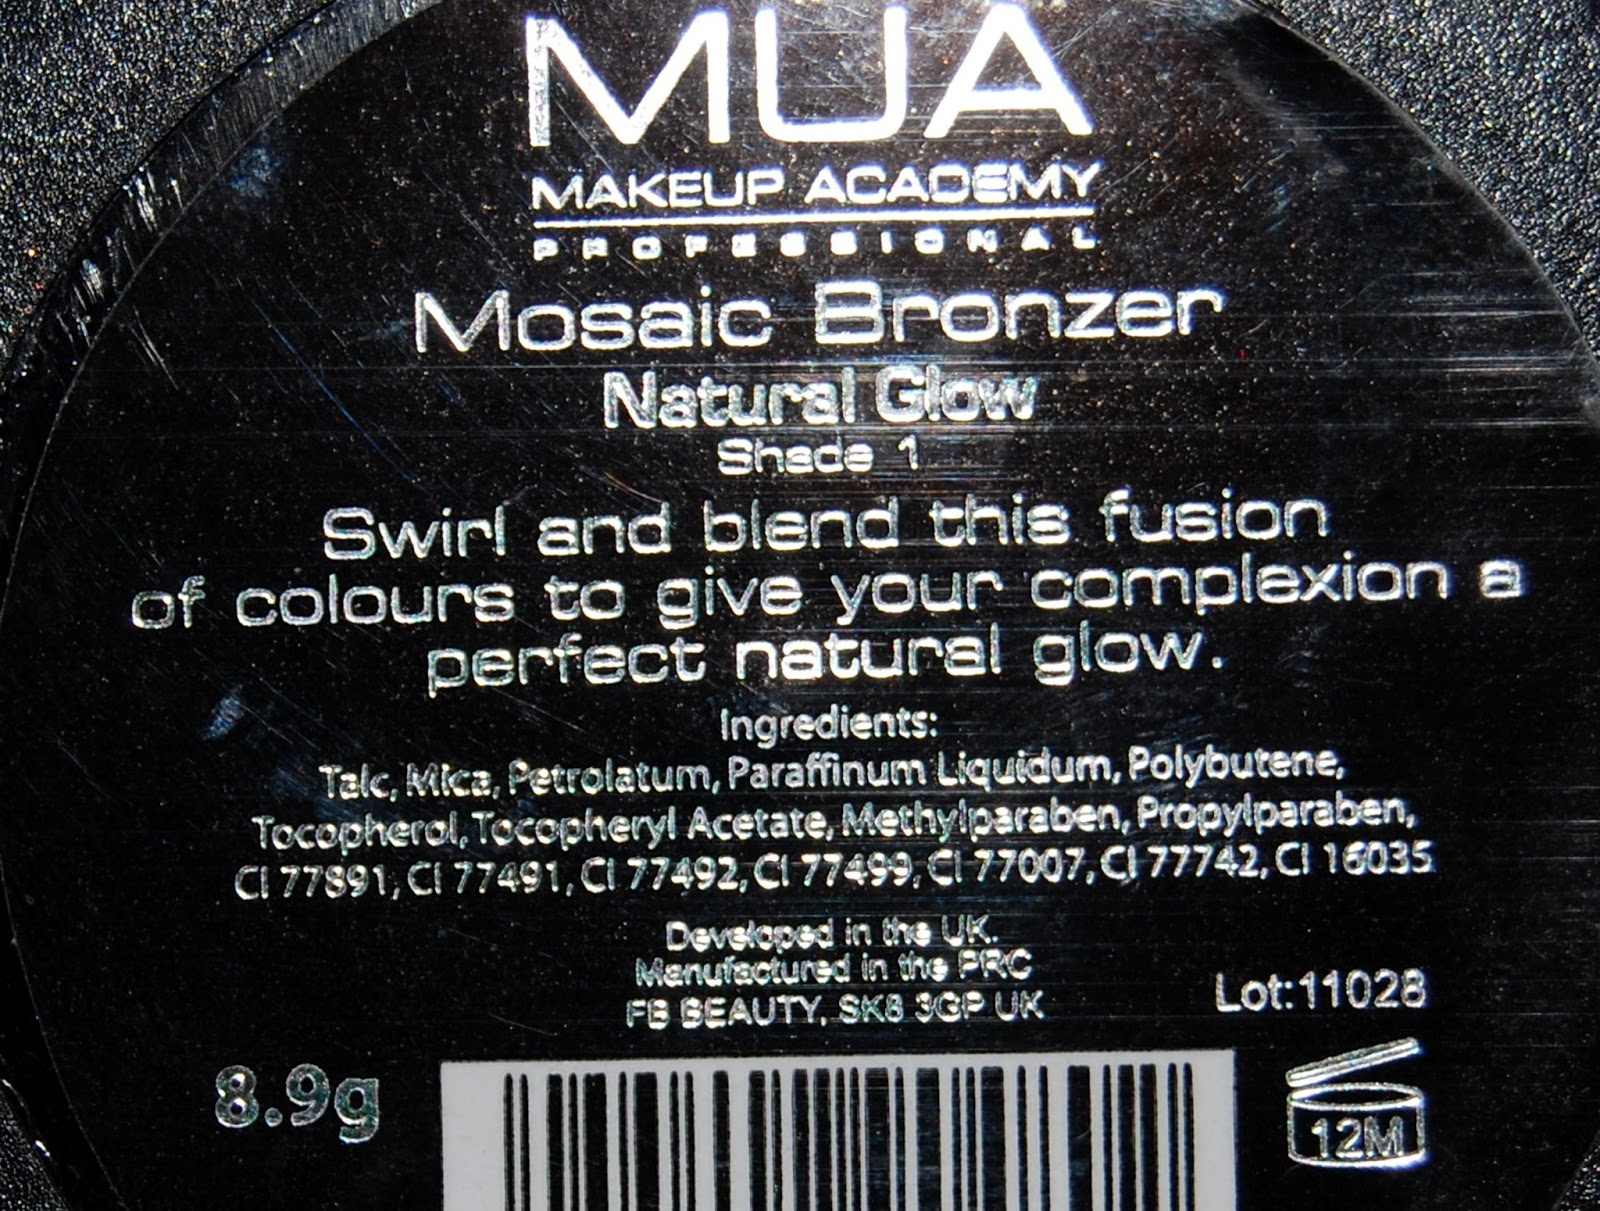 MUA Mosaic Bronzer Natural Glow, Shade 1 Ingredients